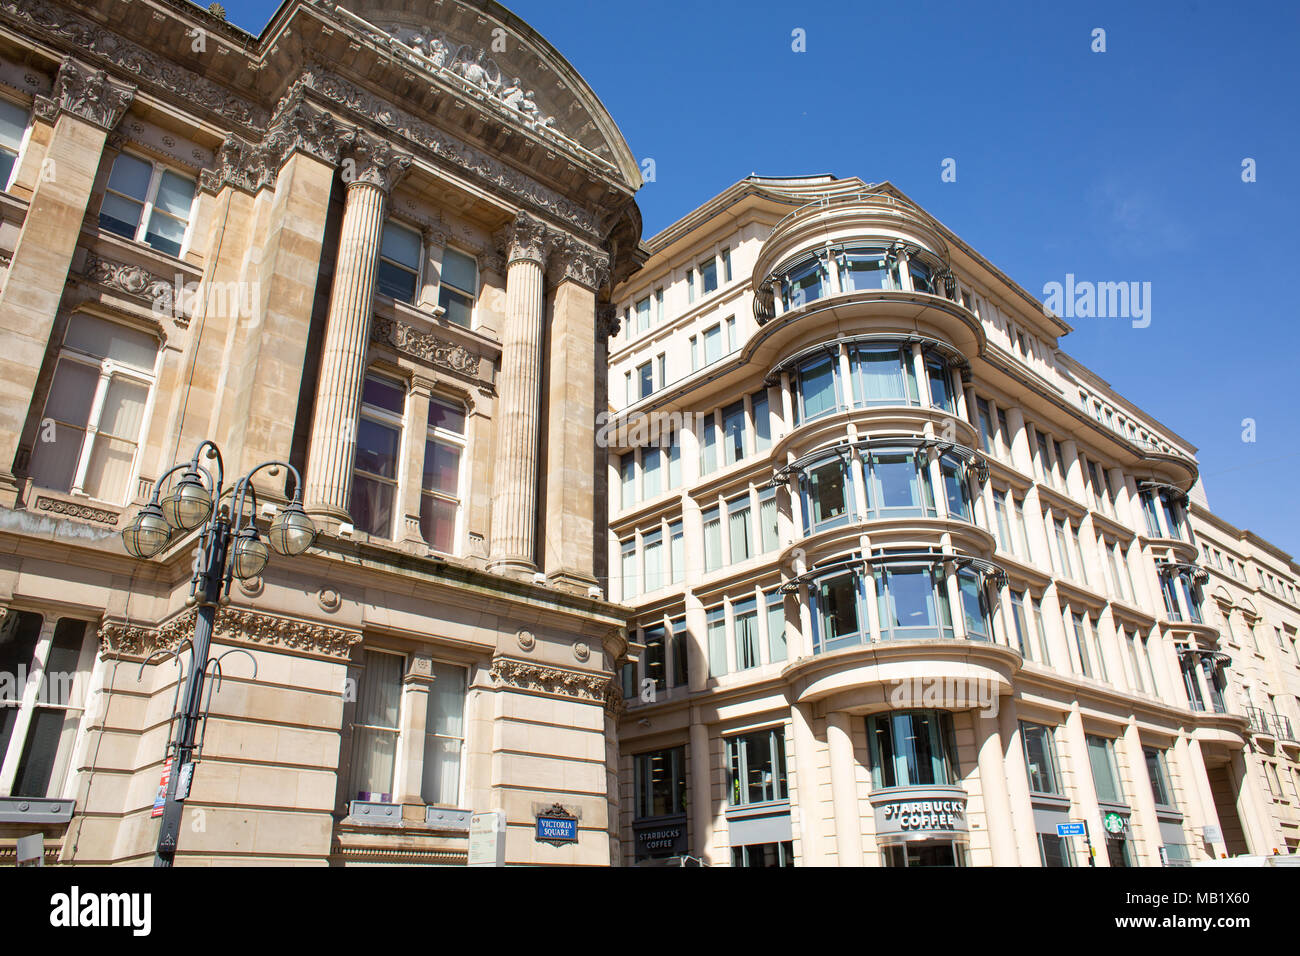 The view of the Lloyds Banking Building incorporating Starbucks café next to the Birmingham City Council in Colmore Row, Birmingham, England, UK - Stock Image